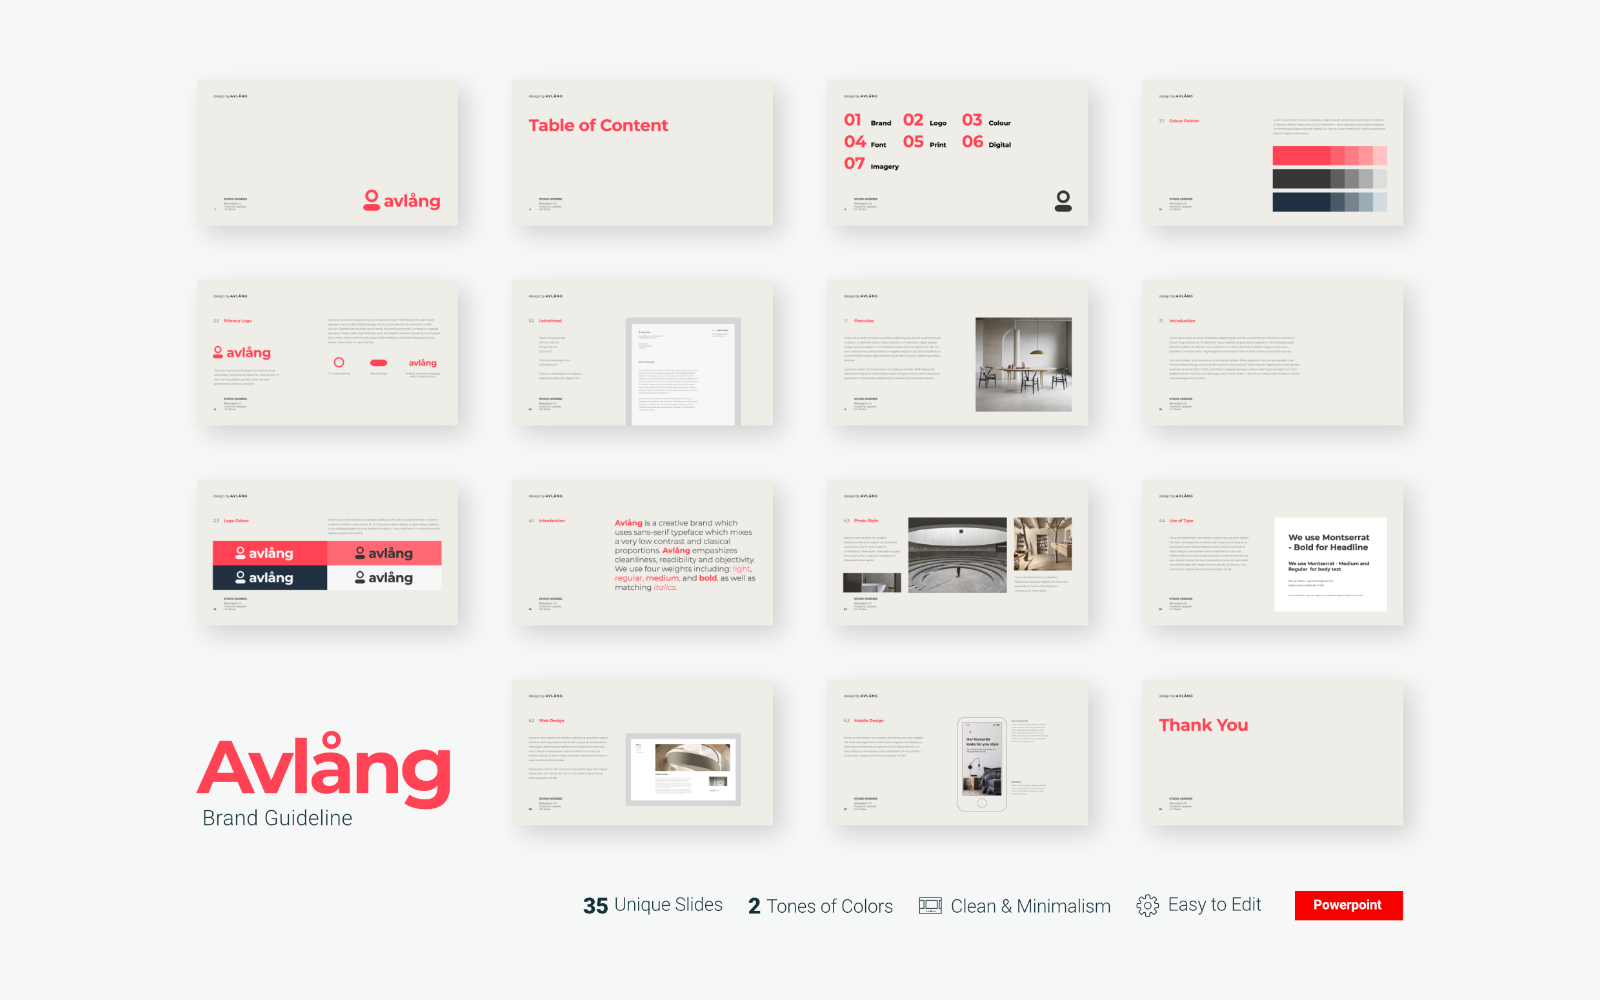 Avlang - Brand Guidelines Presentation - Powerpoint Template